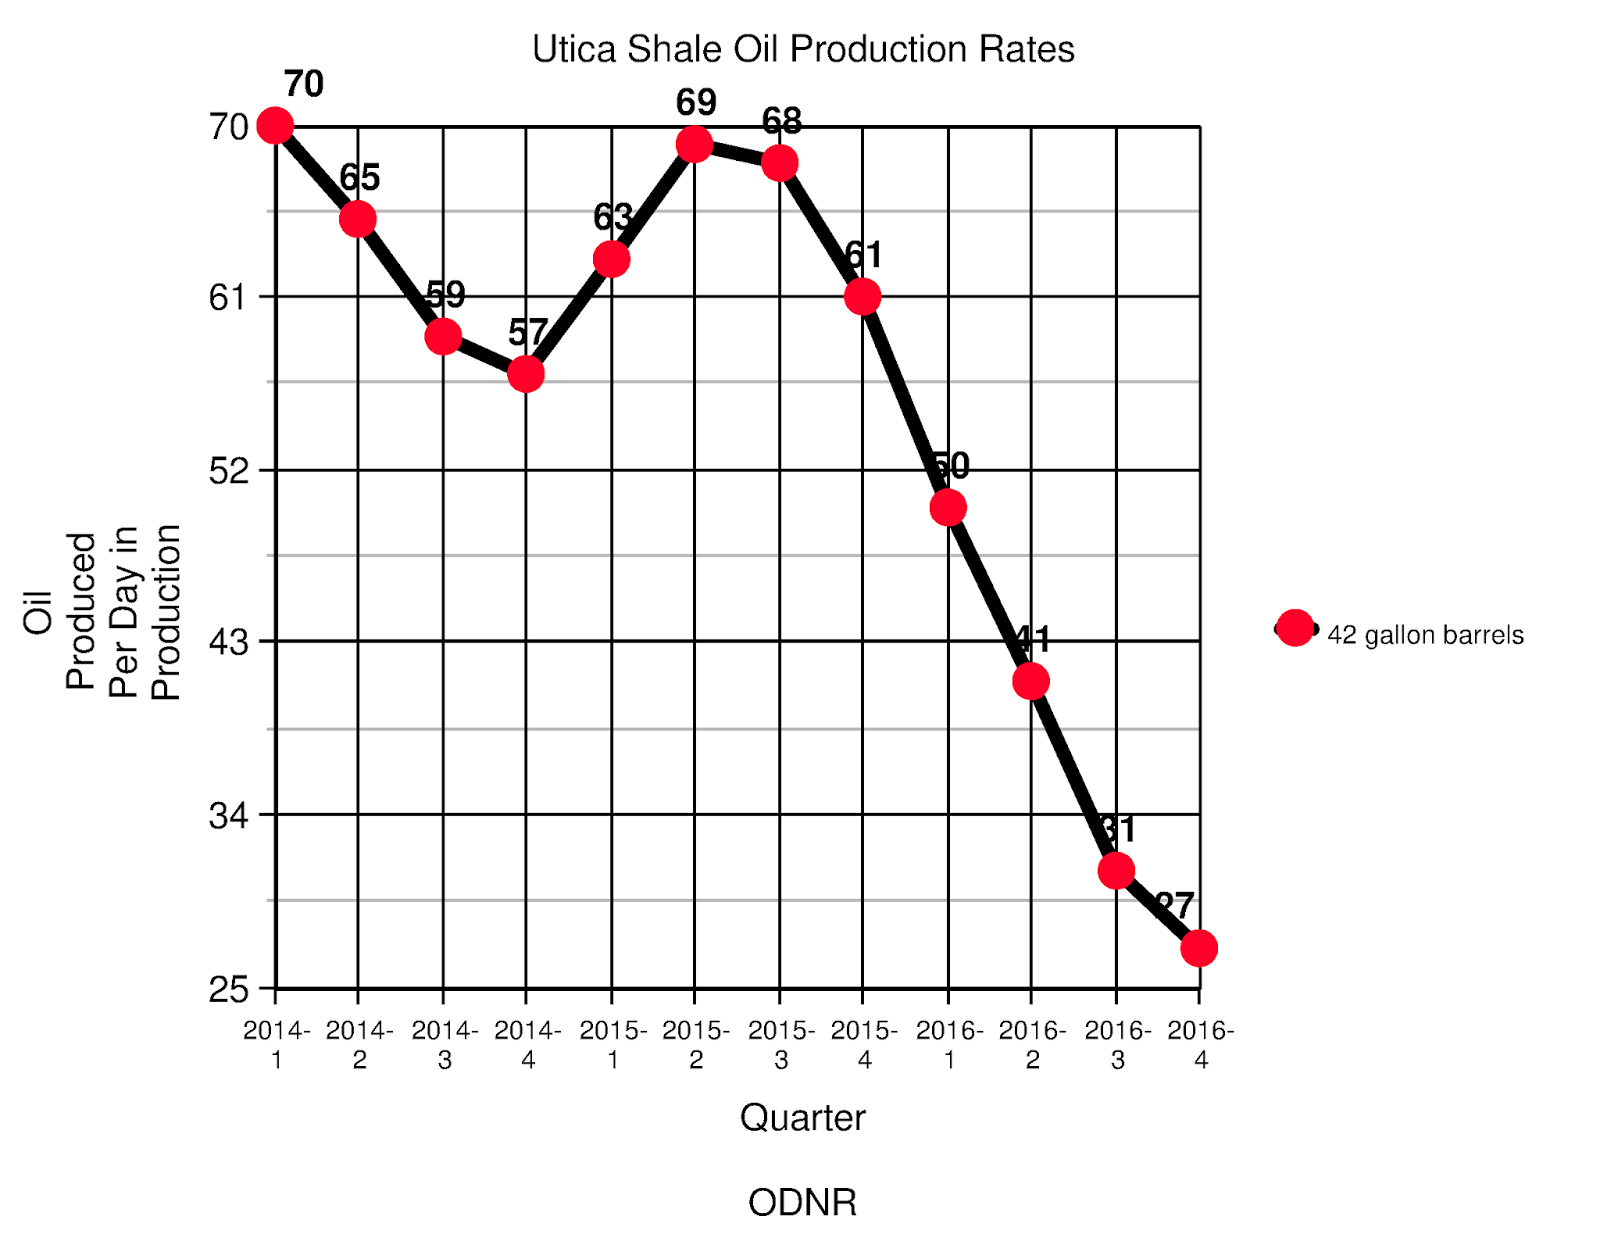 The Daily Digger Digging Into 4th Quarter 2016 Utica Shale Wiring Diagram Oil Production Rates Continued Their Fall In Of As Well Significant Decline Can Be Seen Clearly This Graph